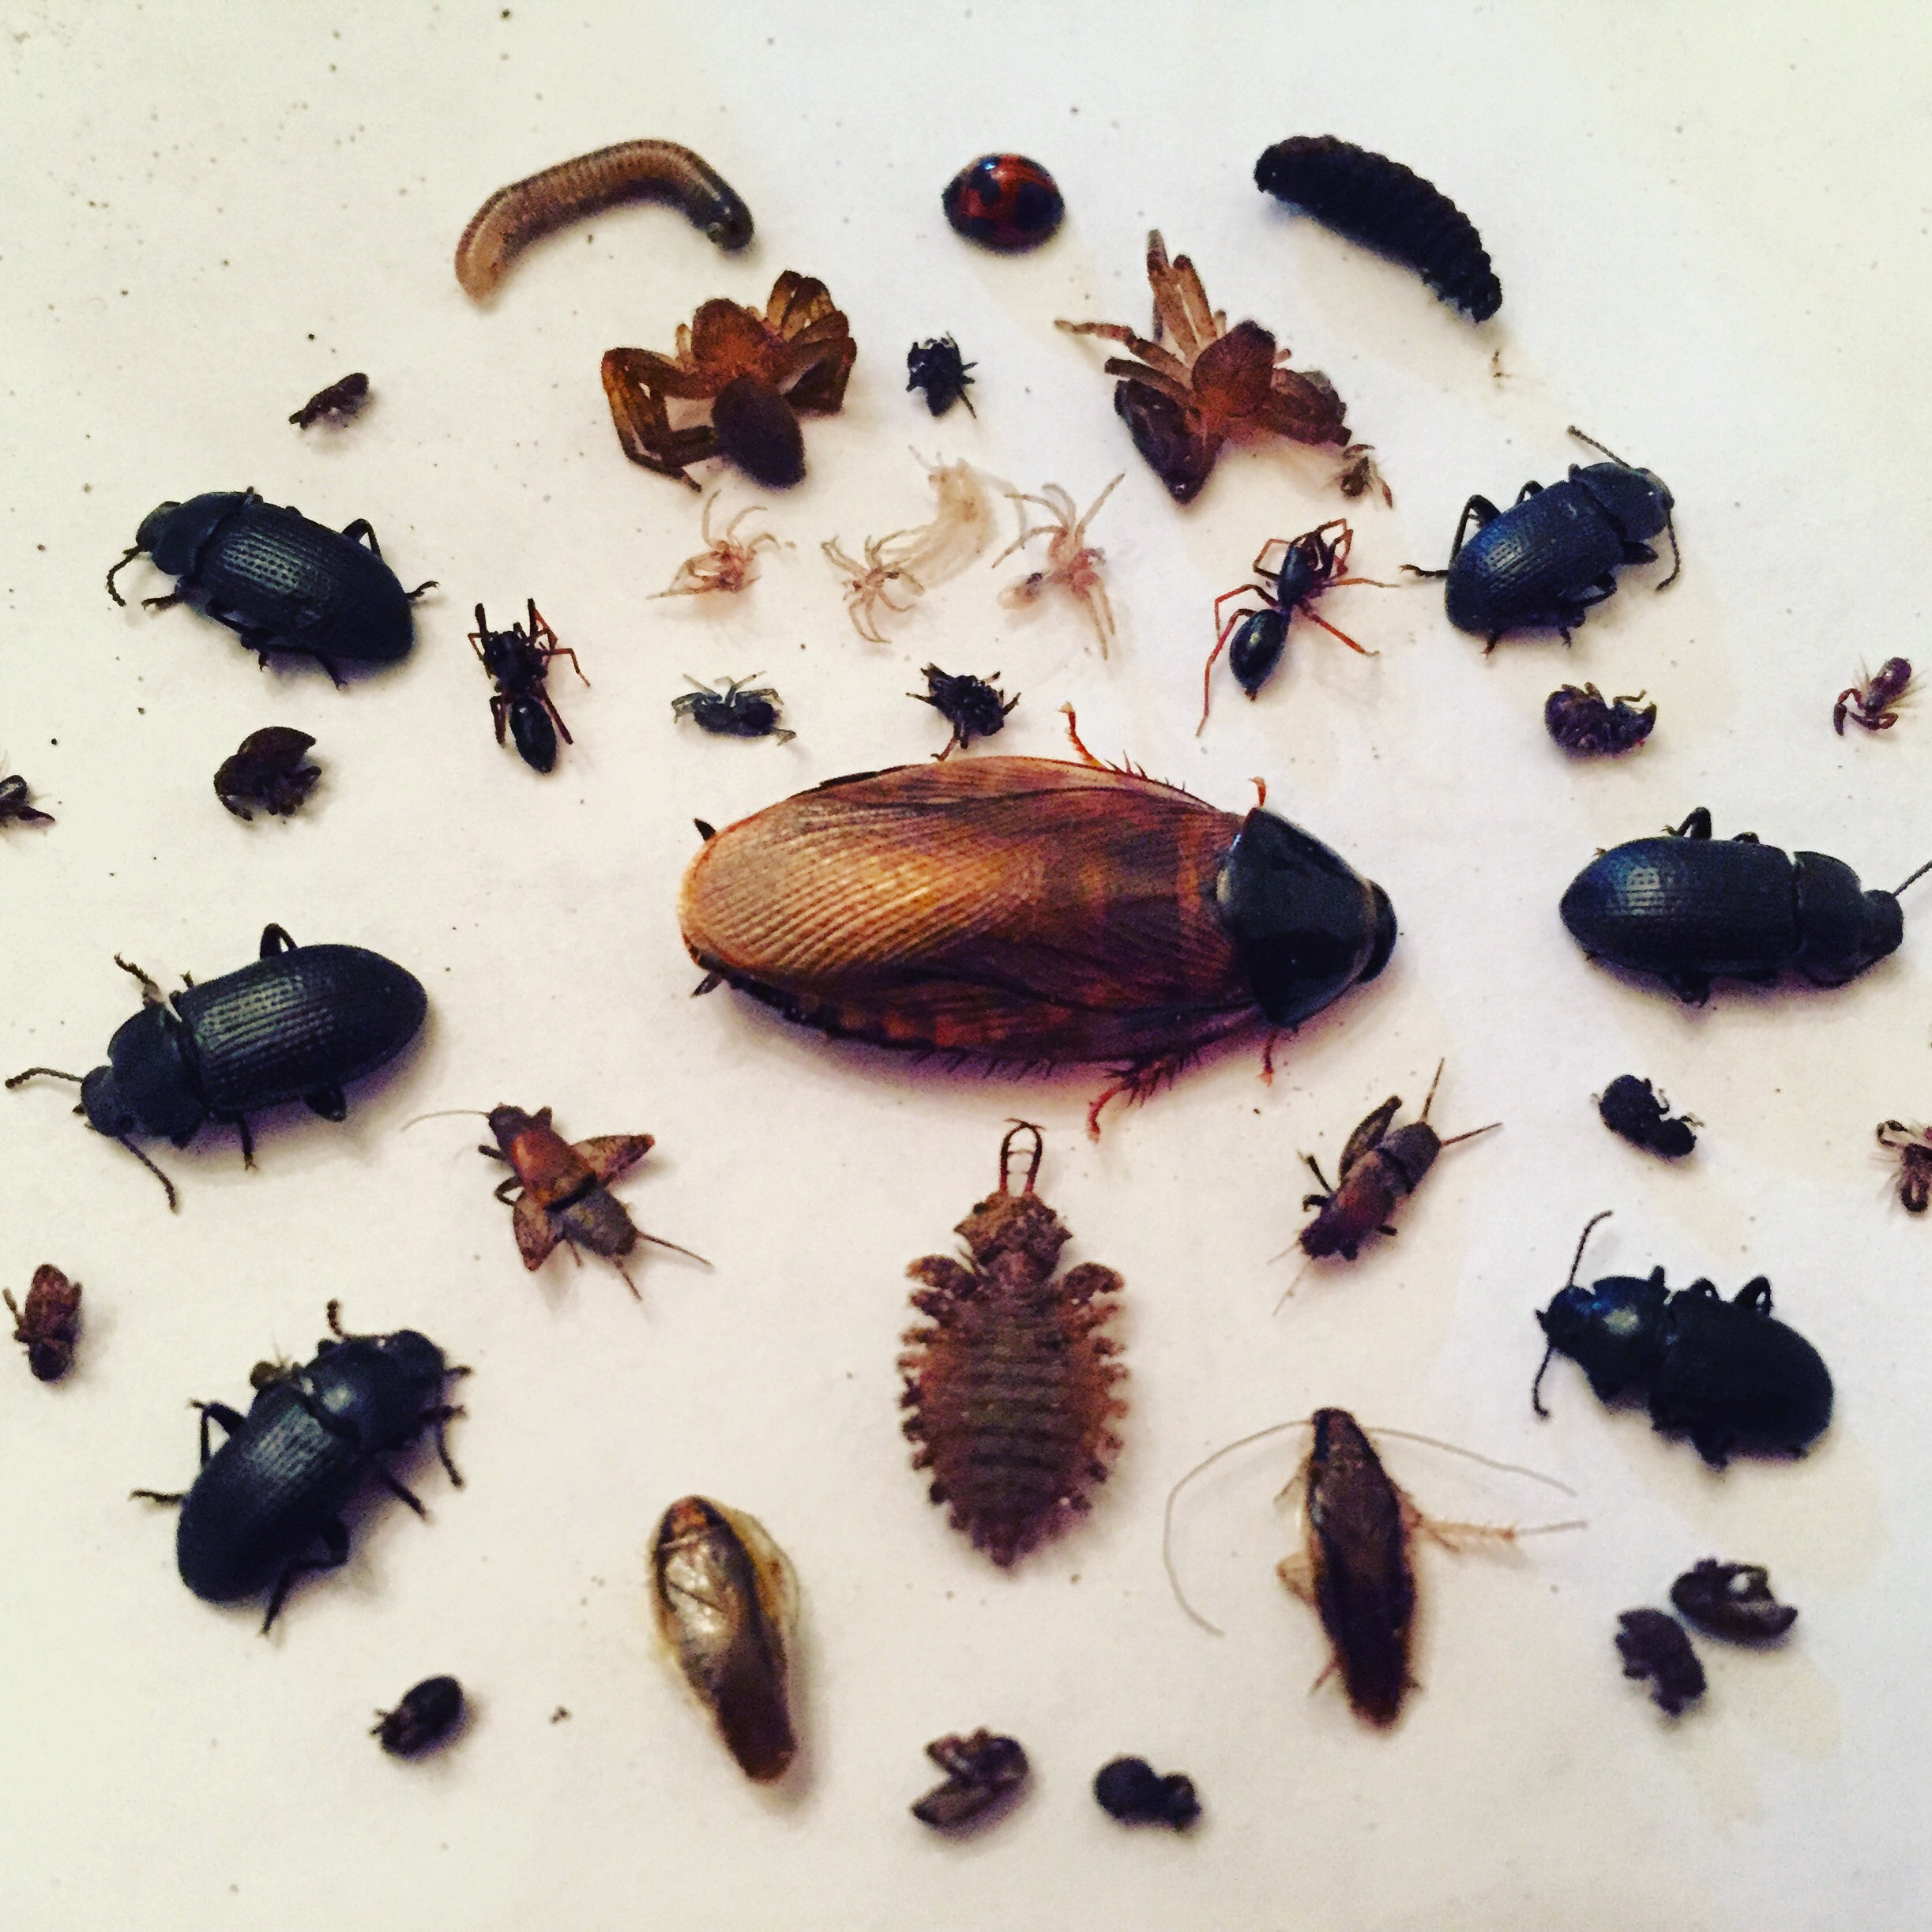 A number of different insects arranged in a circular pattern